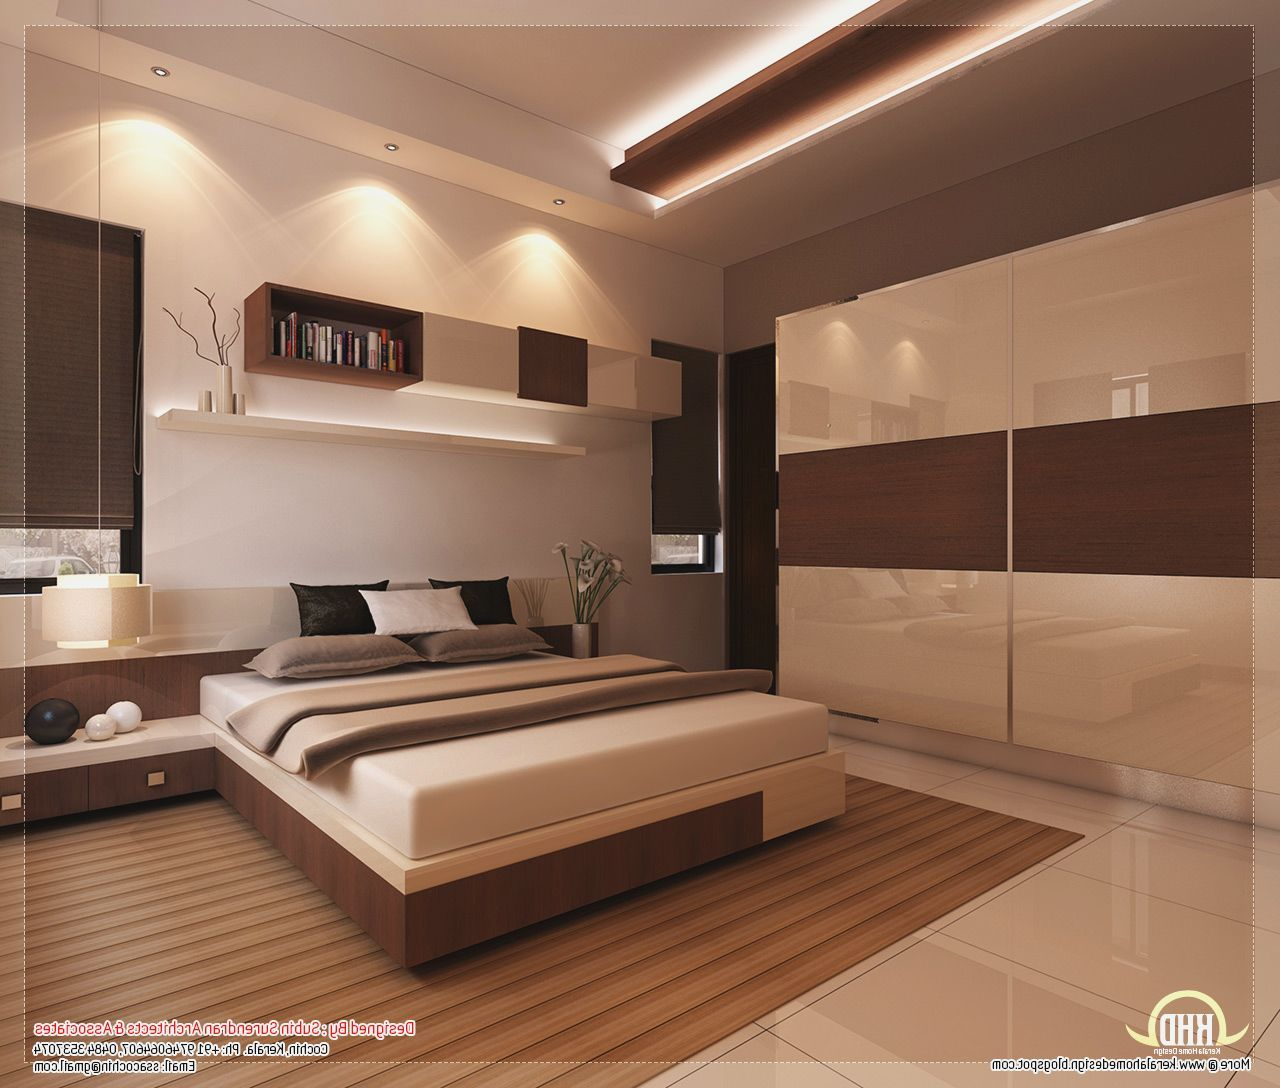 Bedroom Designs India Low Cost More Picture Bedroom Designs India Low Cost Please Visit Www